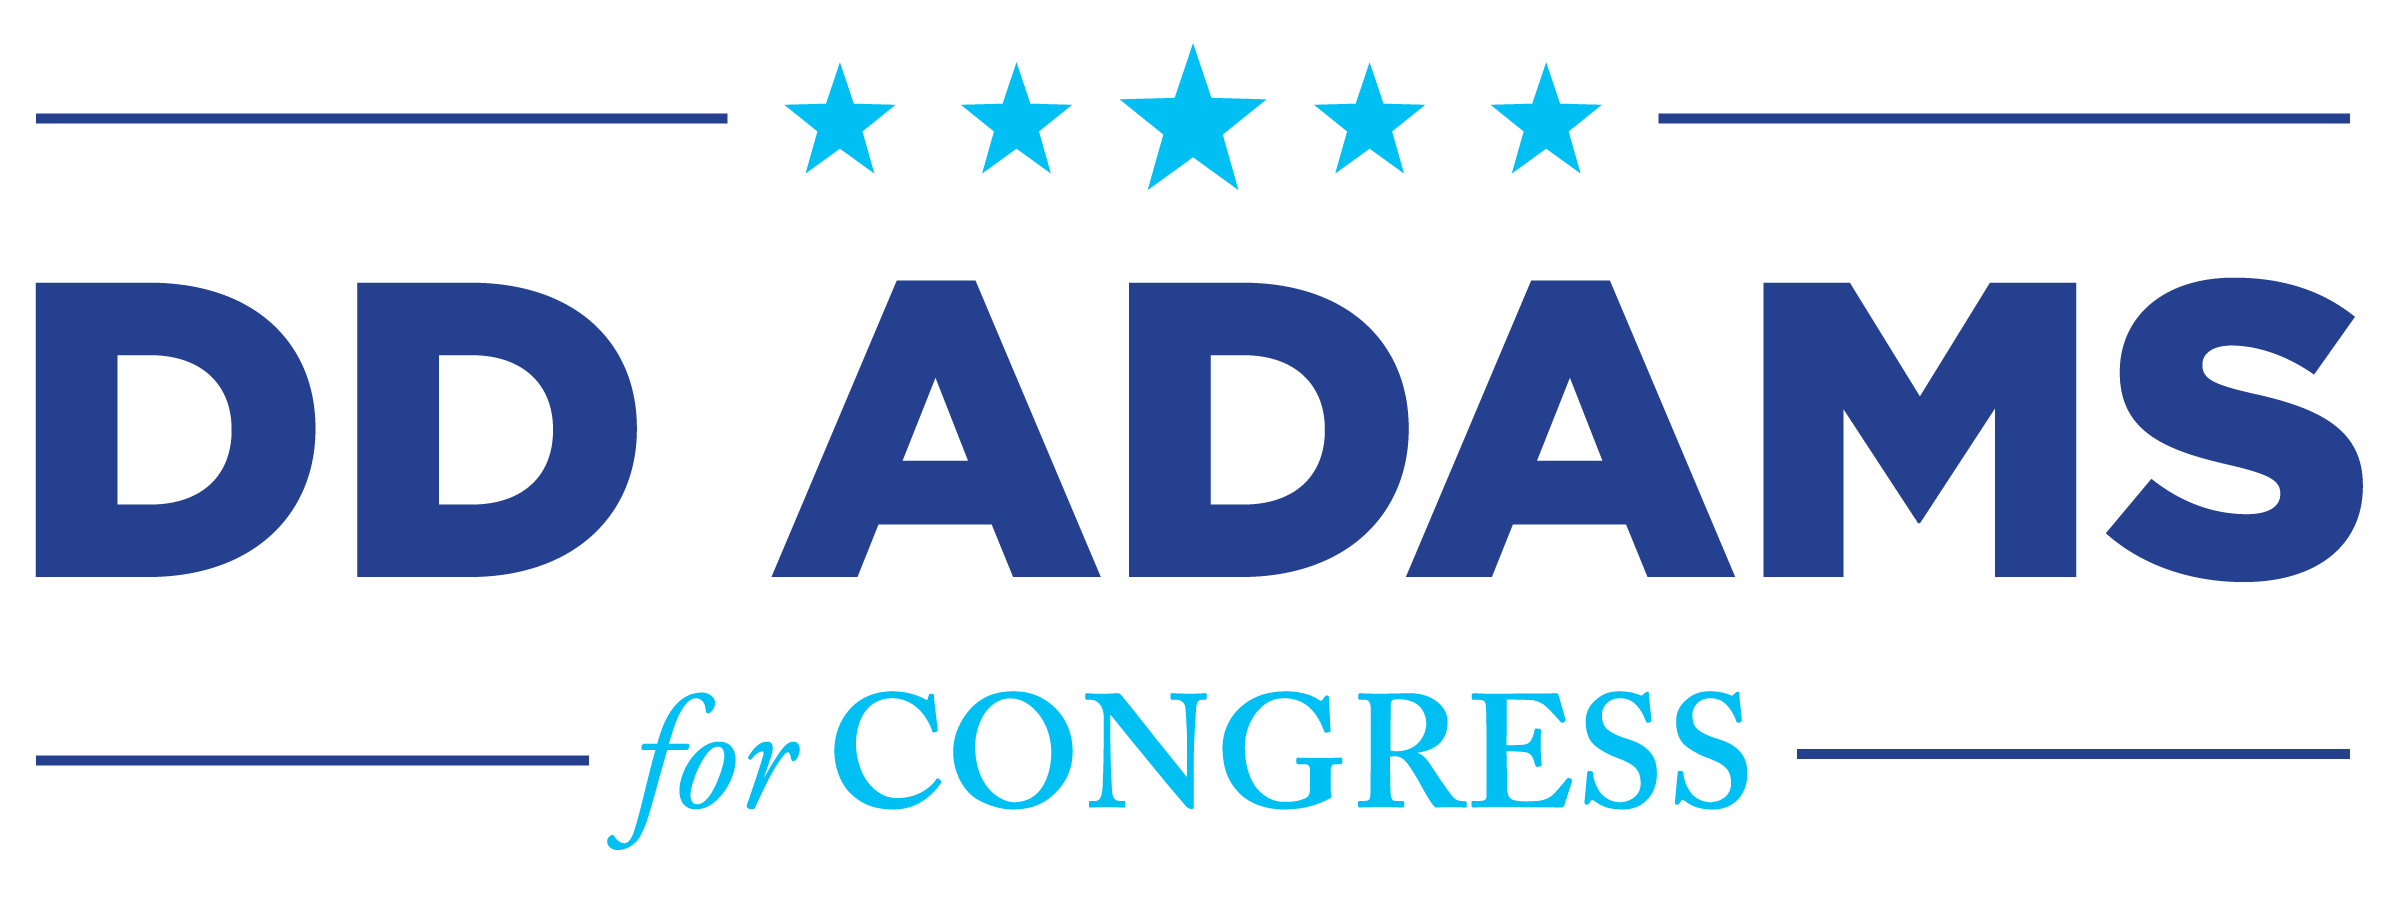 DD Adams for Congress